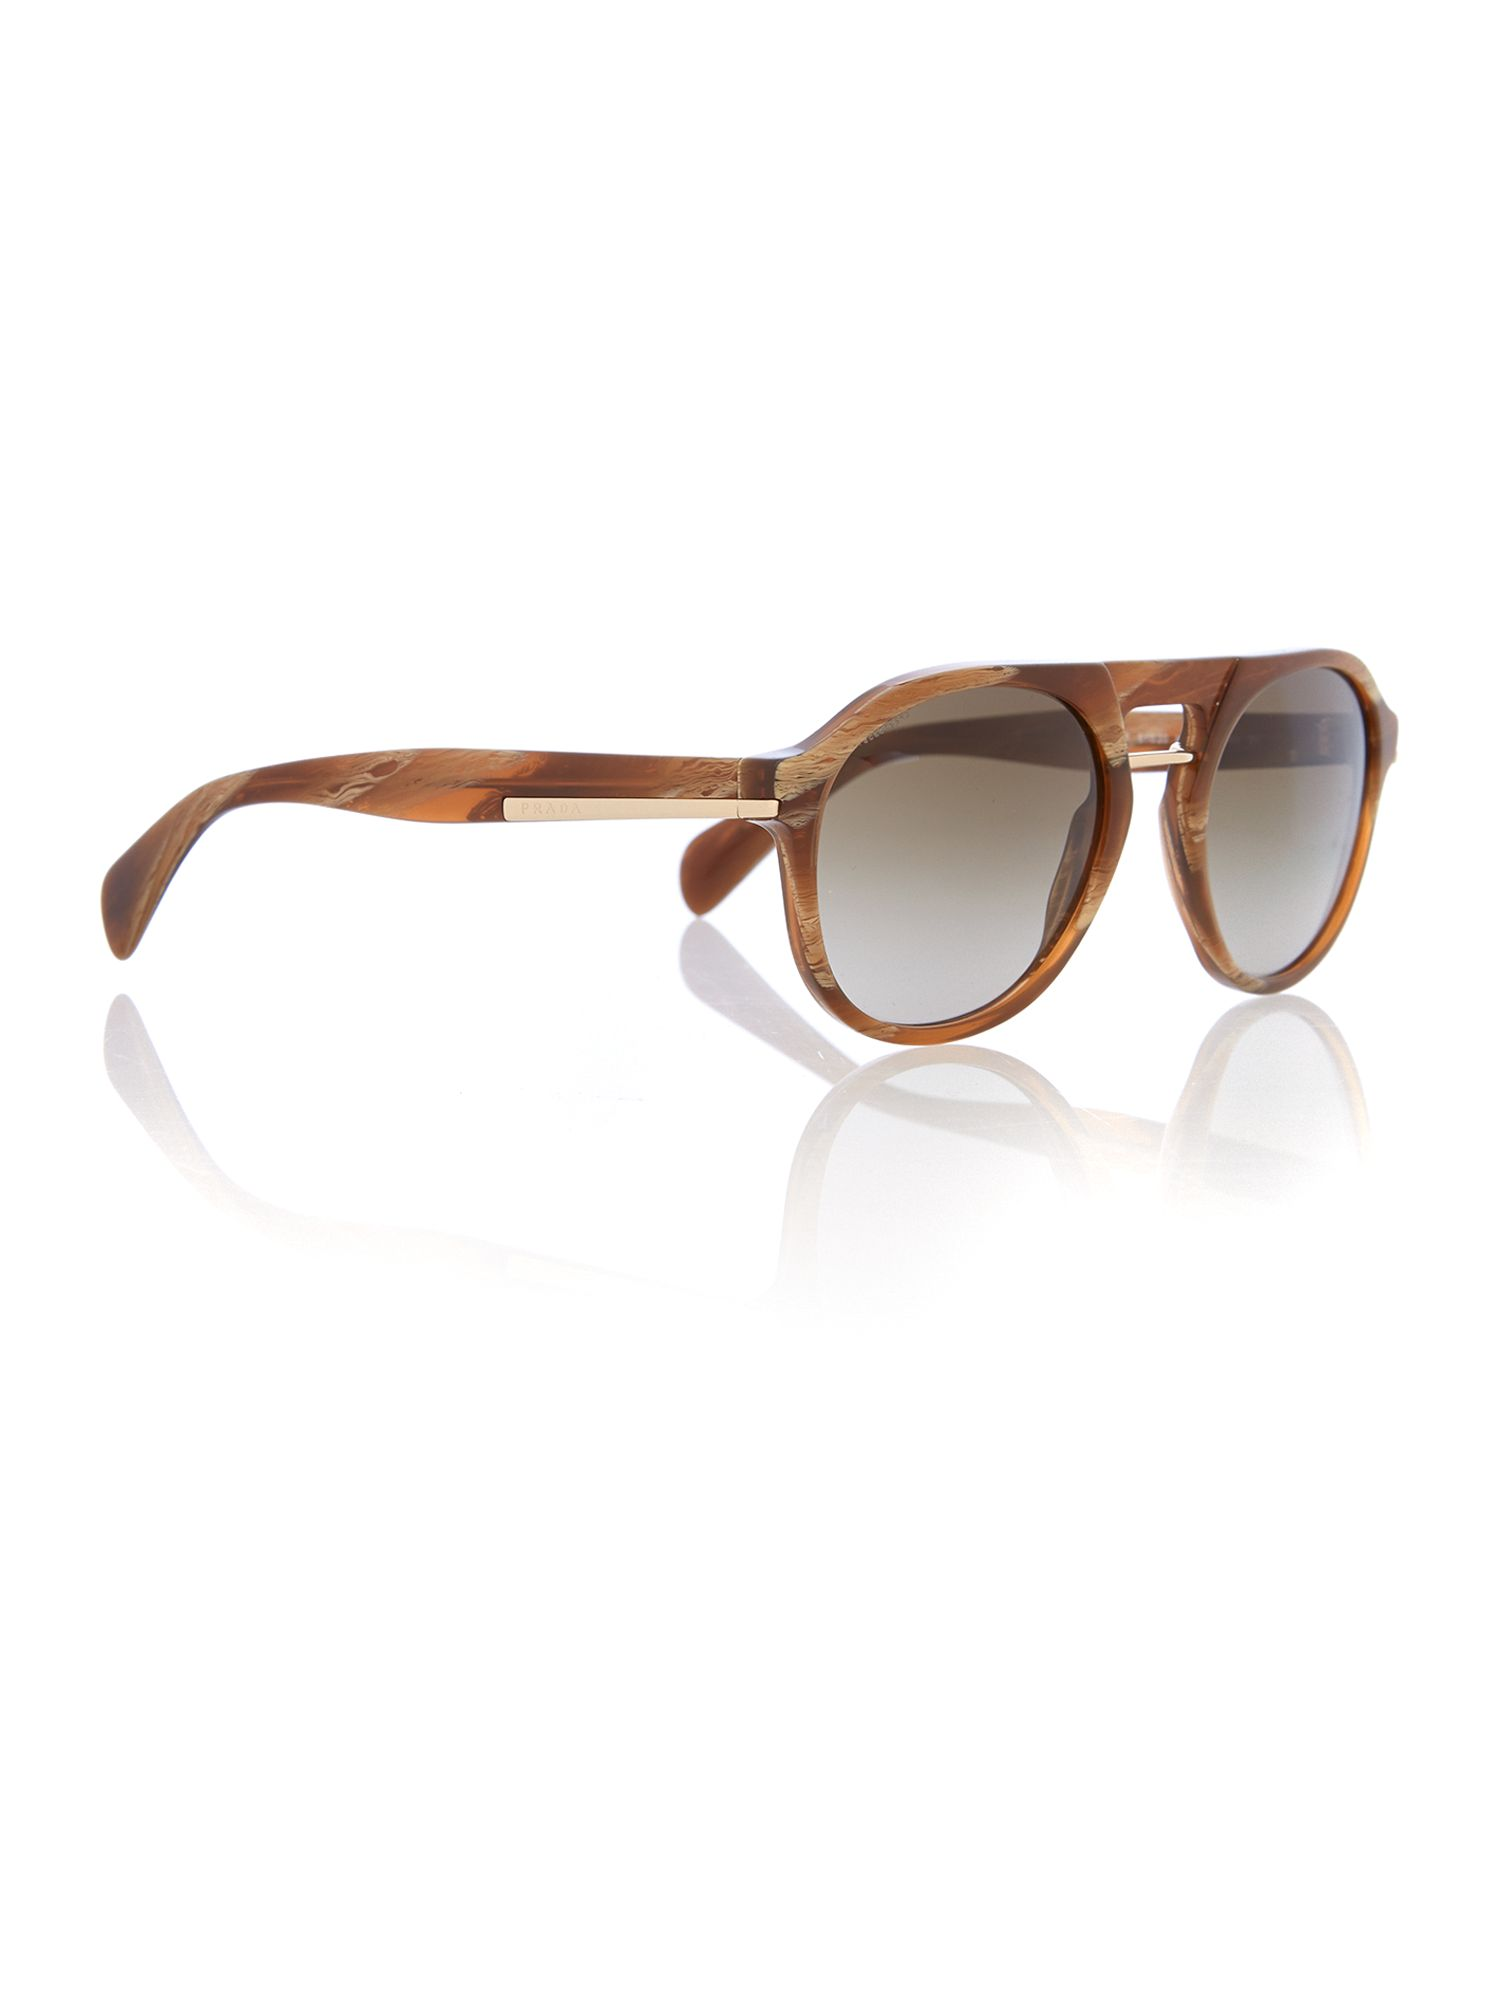 Men brown gradient phantos sunglasses